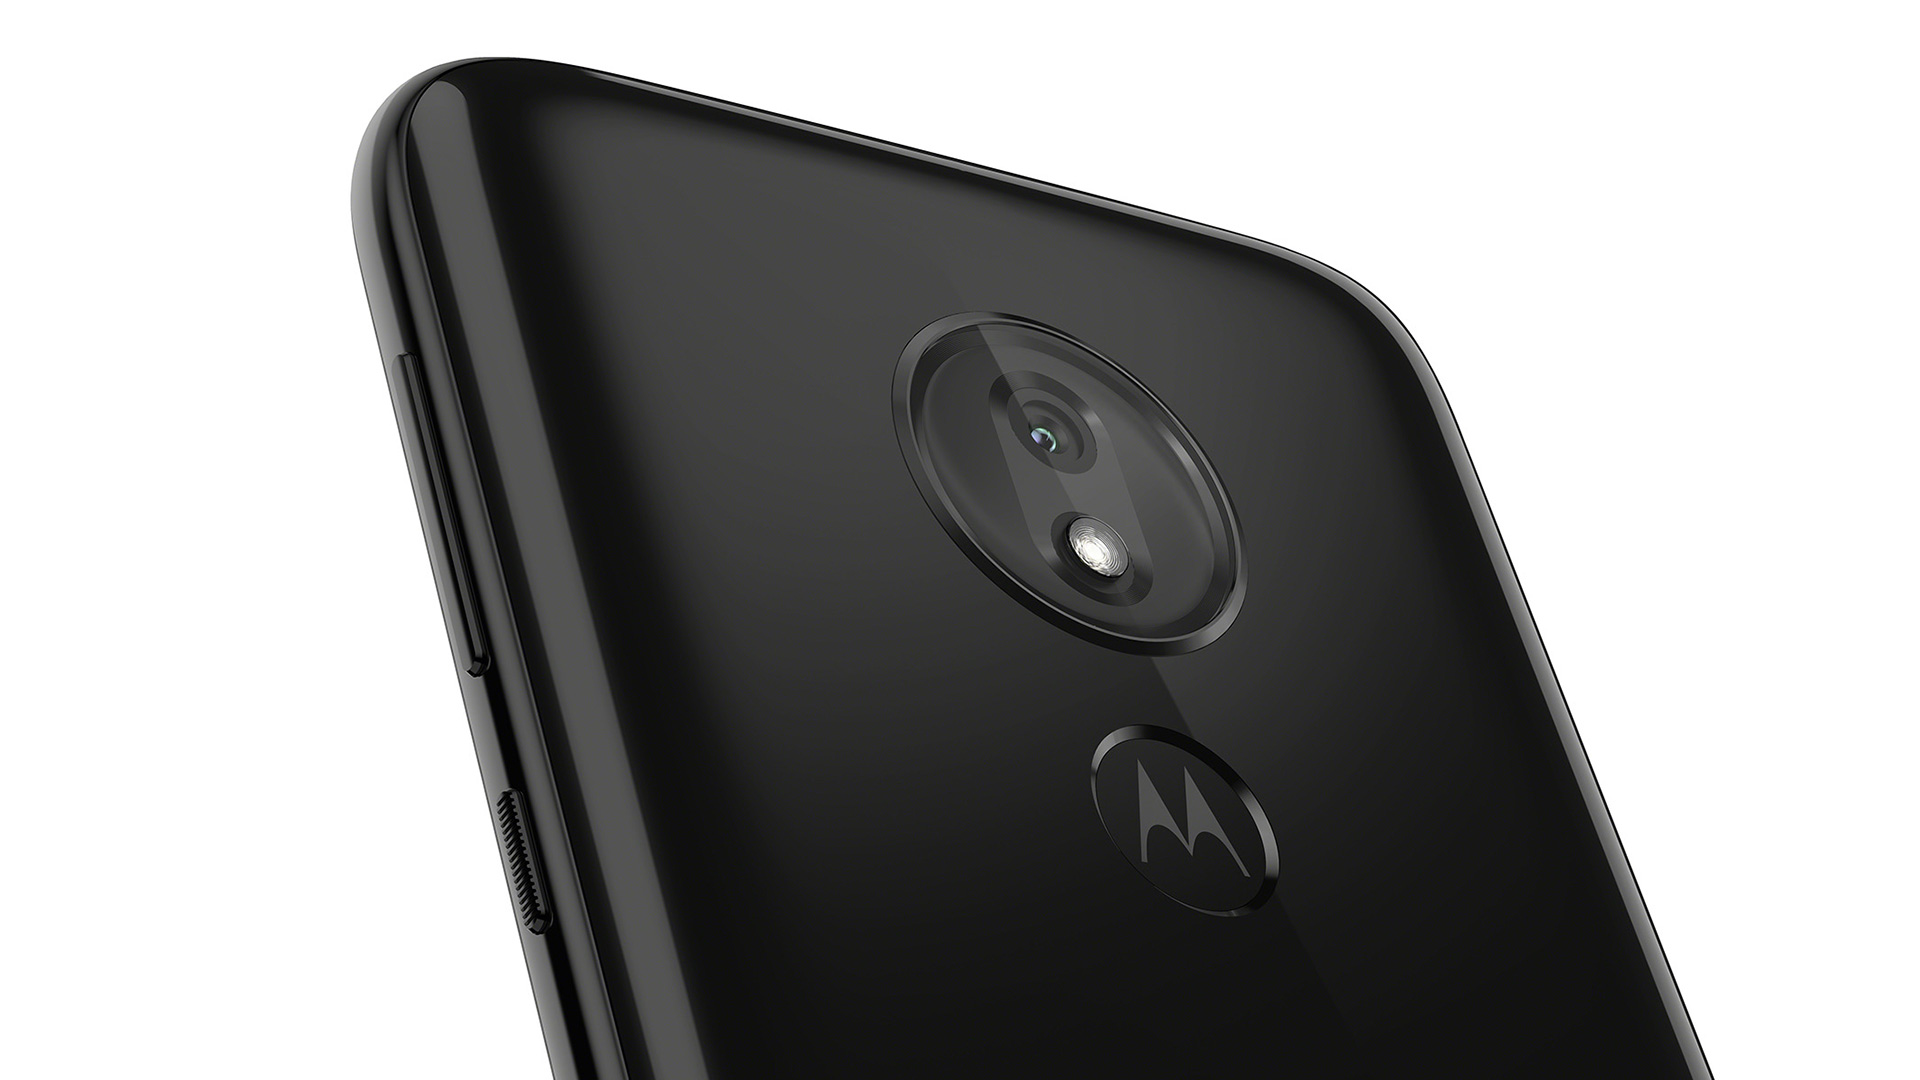 Motorola Moto G7 Power Smartphone Review - NotebookCheck net Reviews